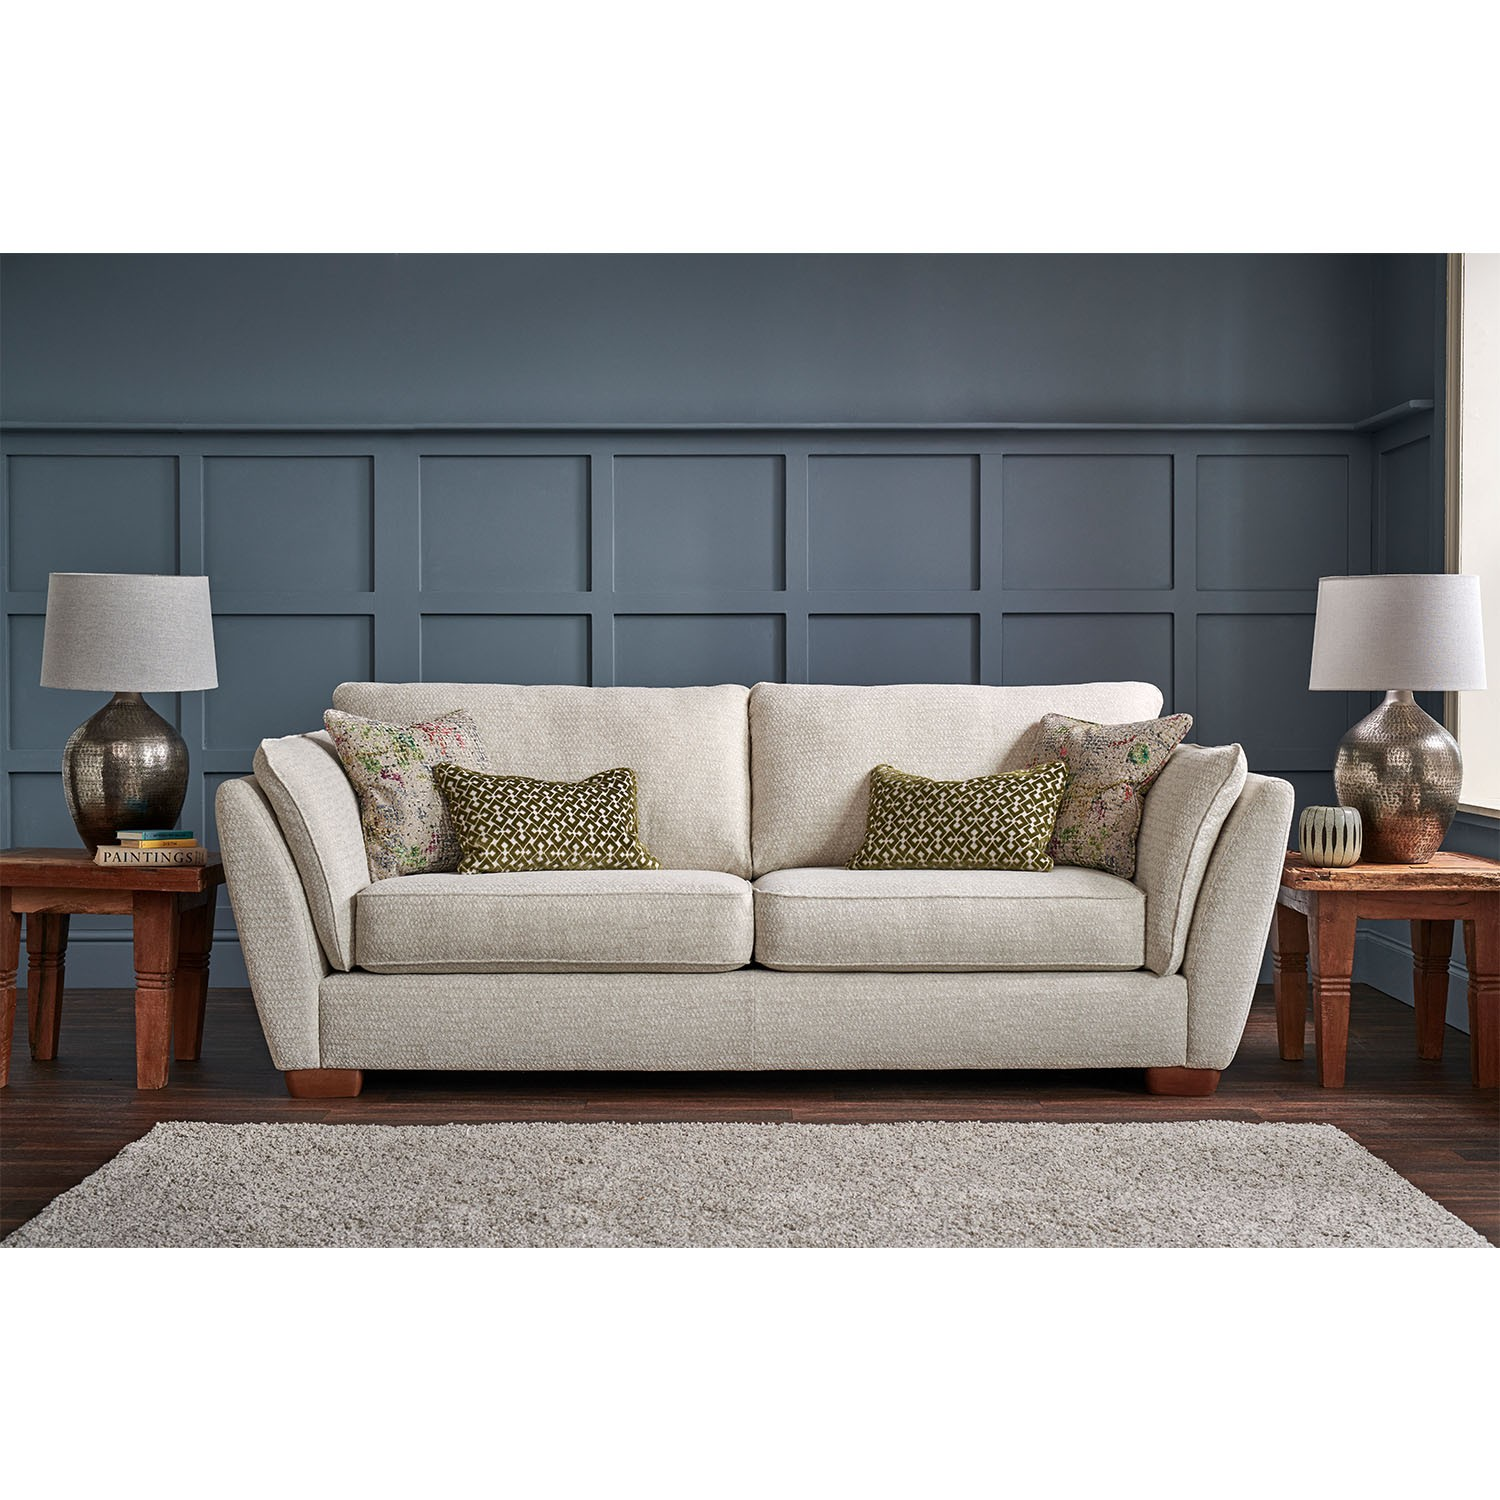 Isabella Two Seater Fabric Sofa